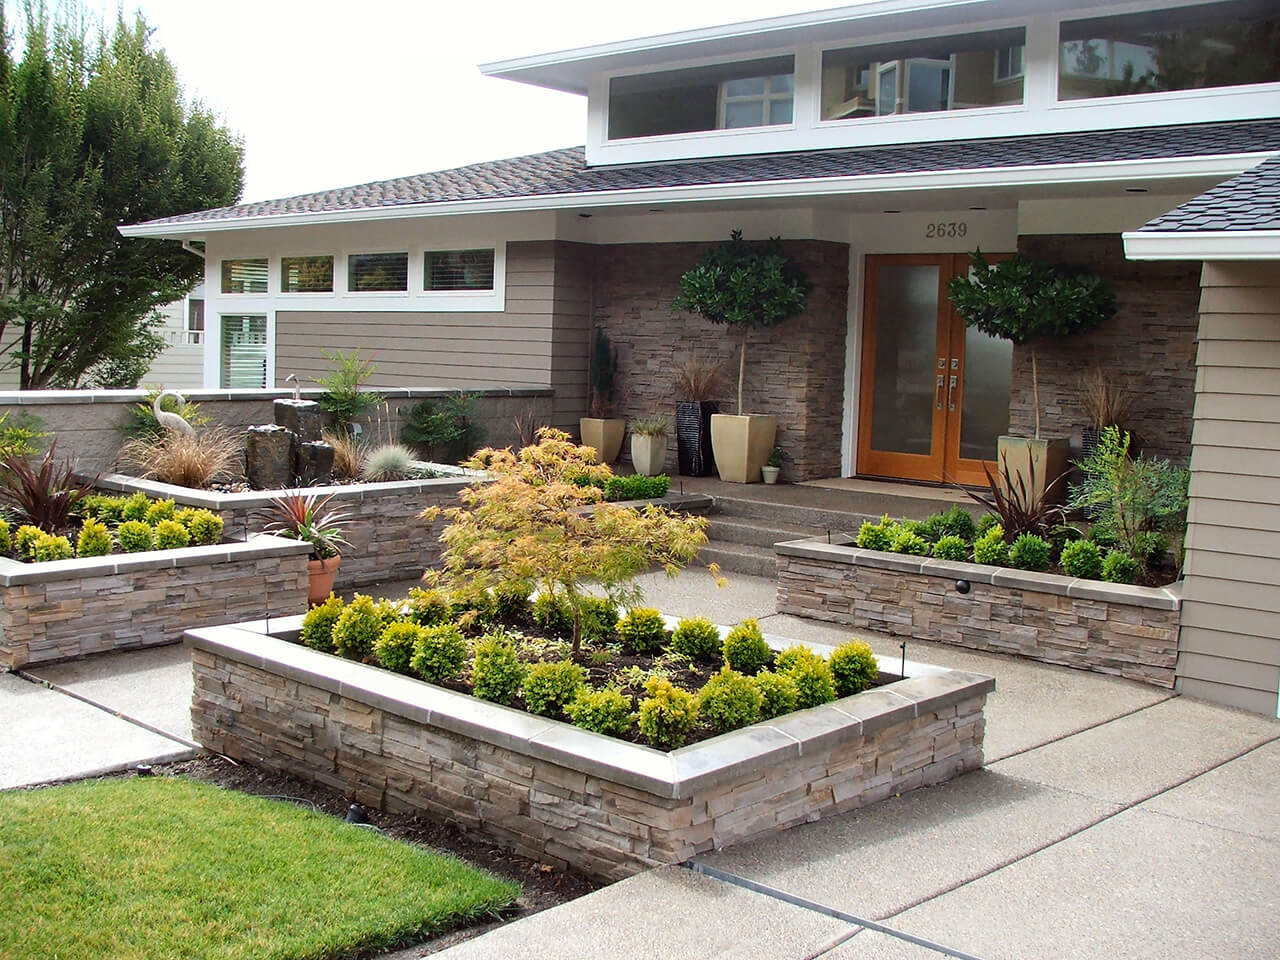 50 best front yard landscaping ideas and garden designs for Outdoor landscaping ideas